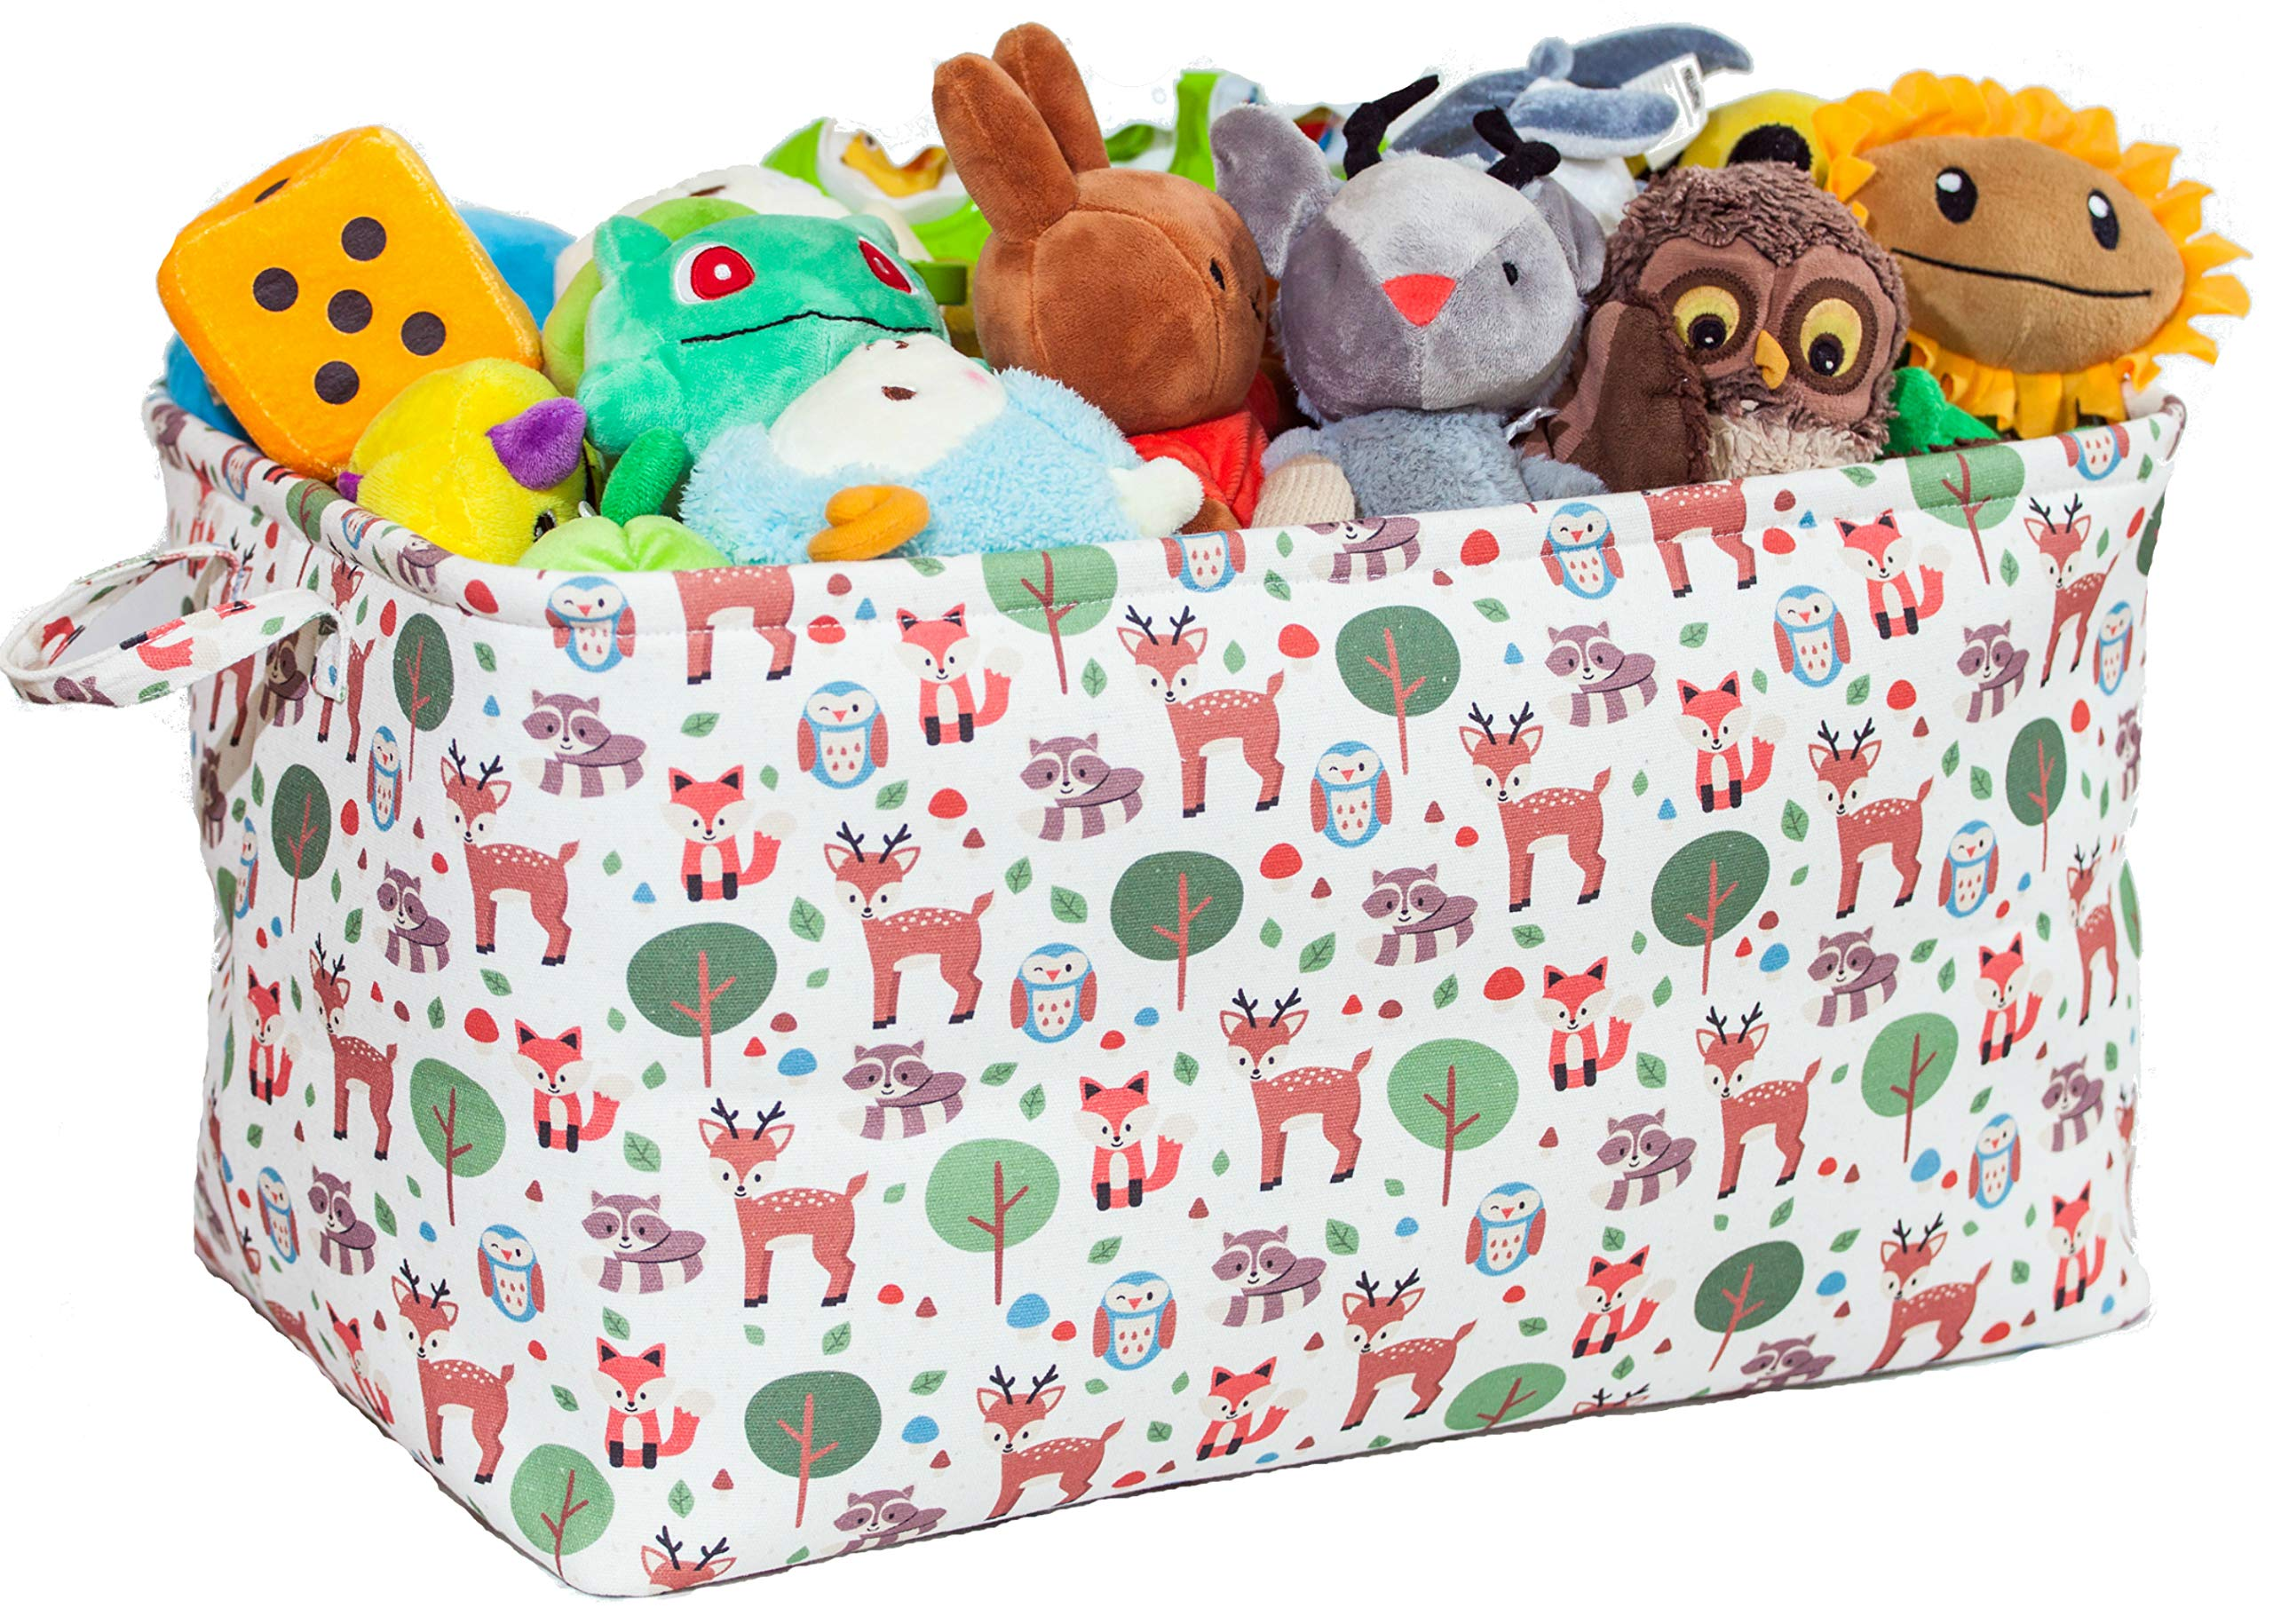 Toy Storage Basket with Woodland Forest Animal Prints - Large Organizer Bin for Kids Toys and Books